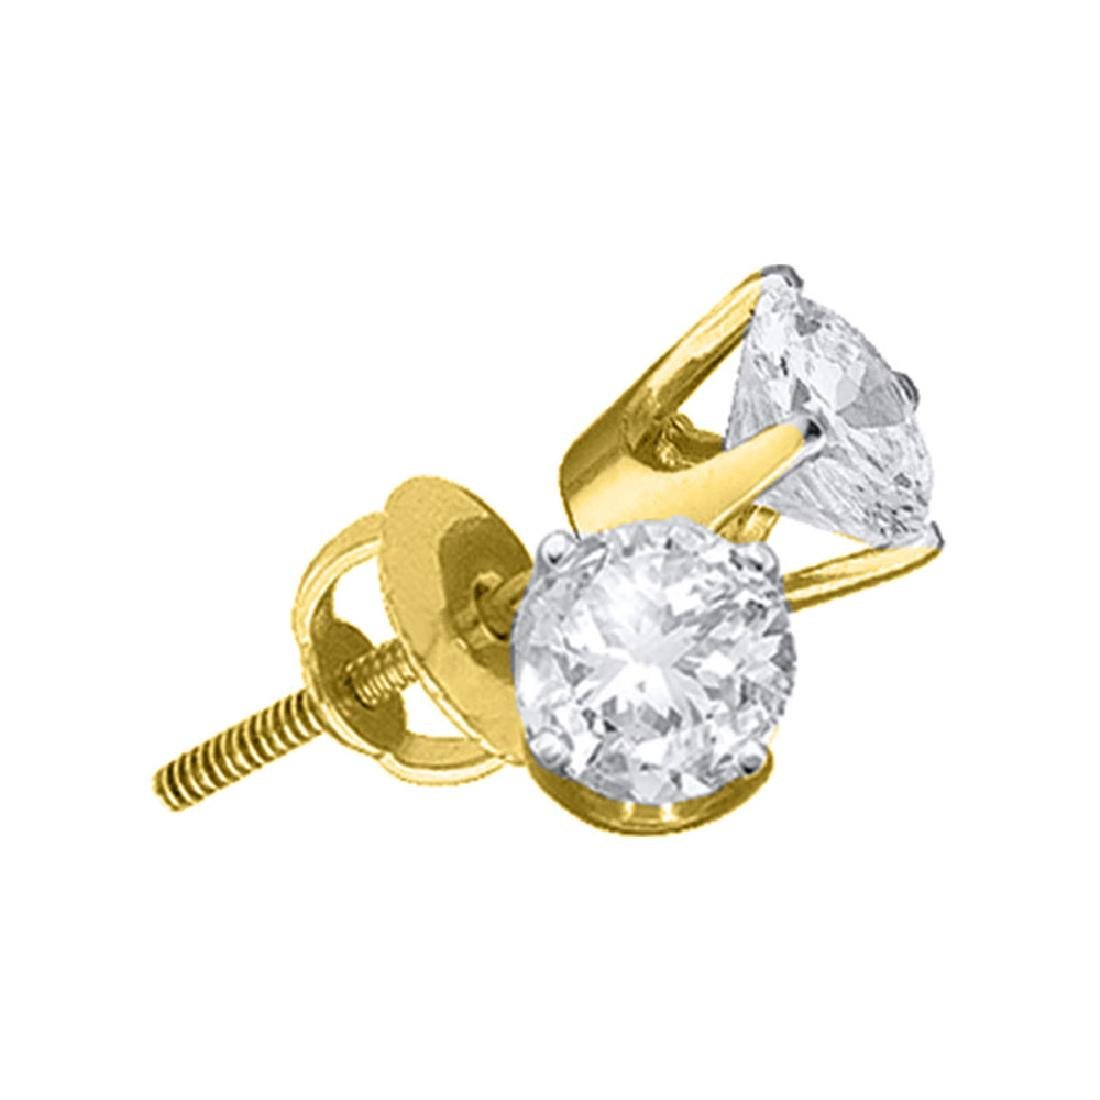 0.80 CTW Diamond Solitaire Stud Earrings 14KT Yellow